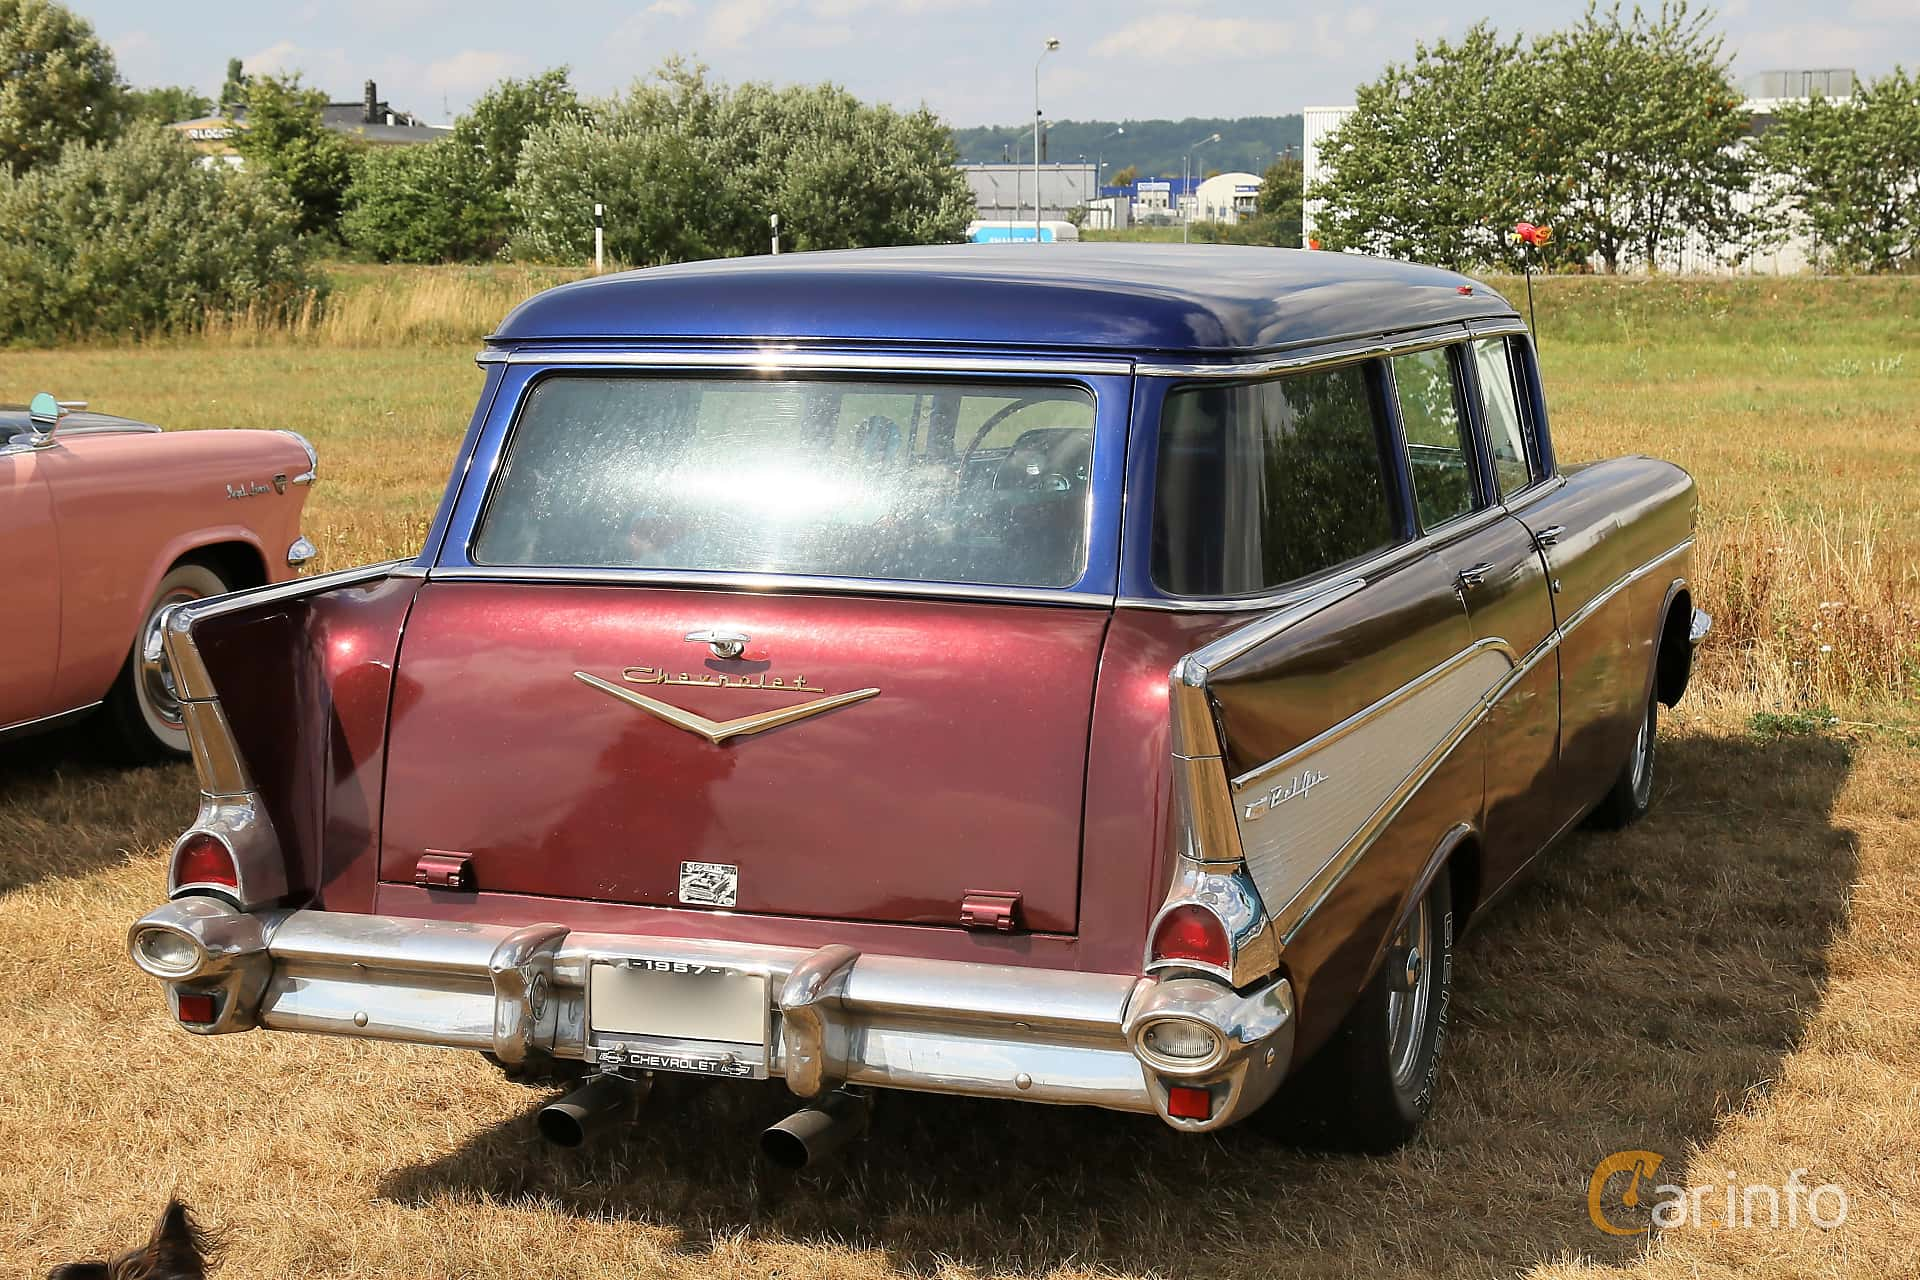 1 Images Of Chevrolet Bel Air Townsman 46 V8 Powerglide 188hp 1957 Chevy Station Wagon Back Side 188ps At